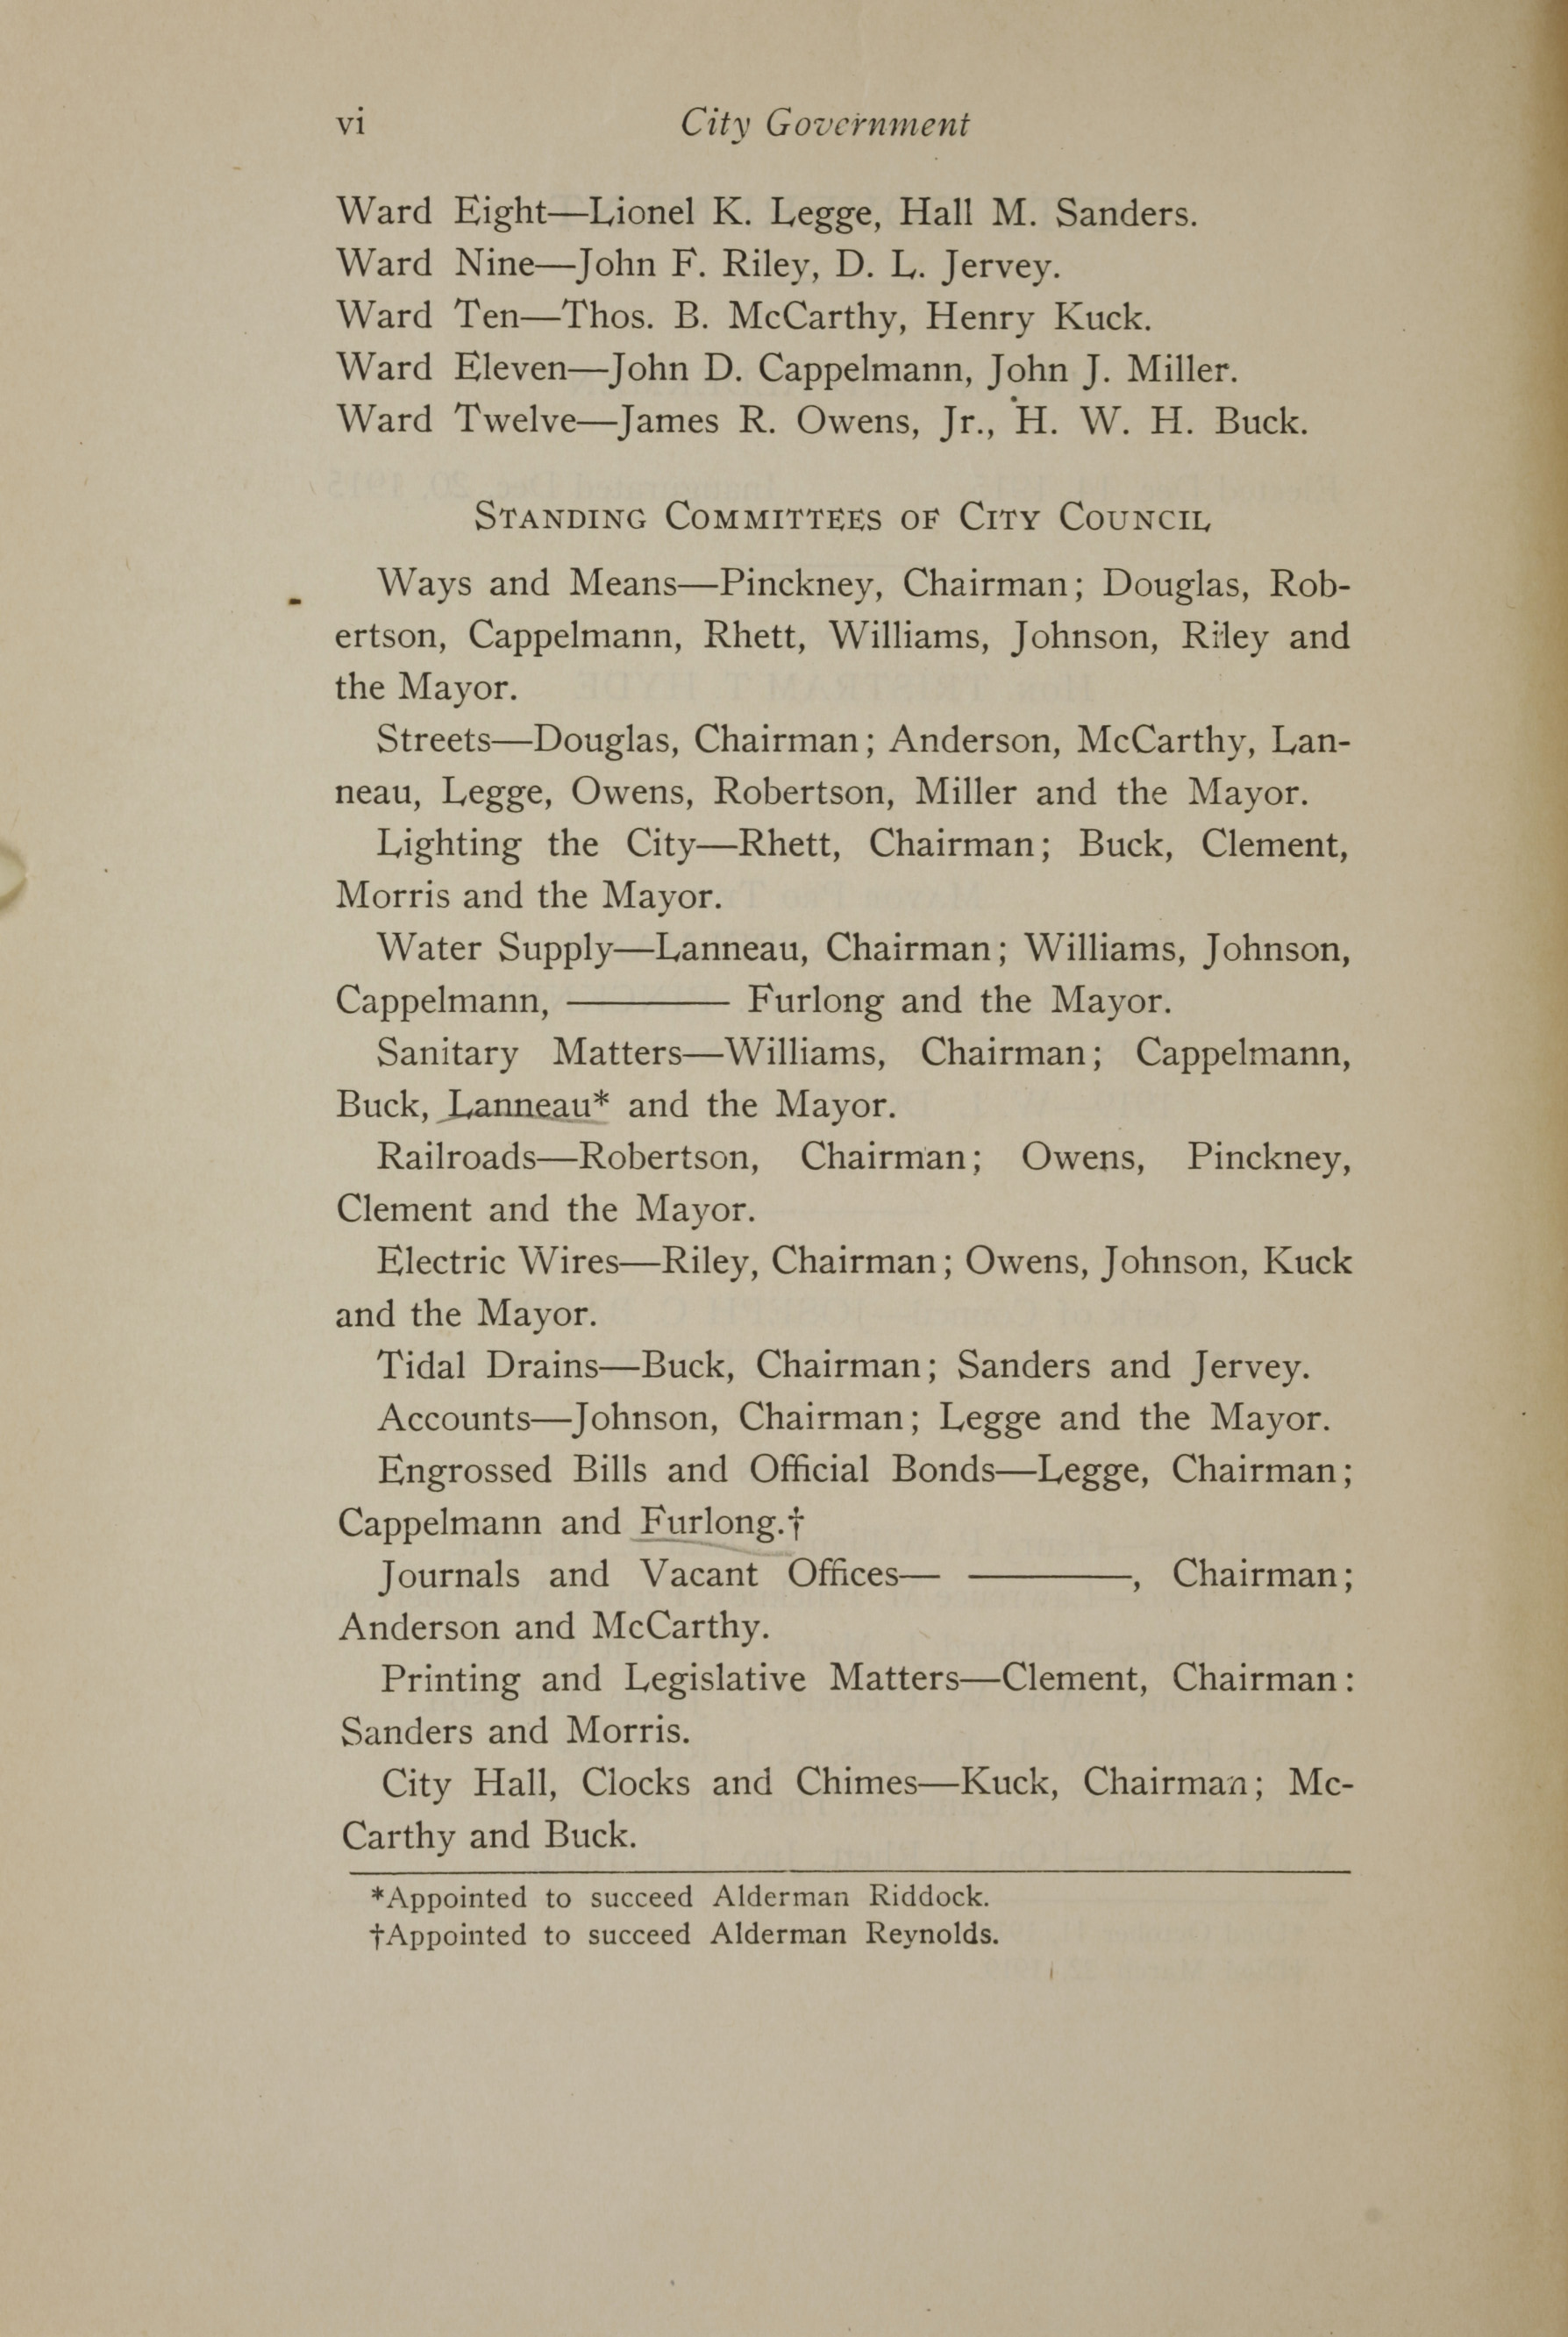 Charleston Yearbook, 1919, page vi